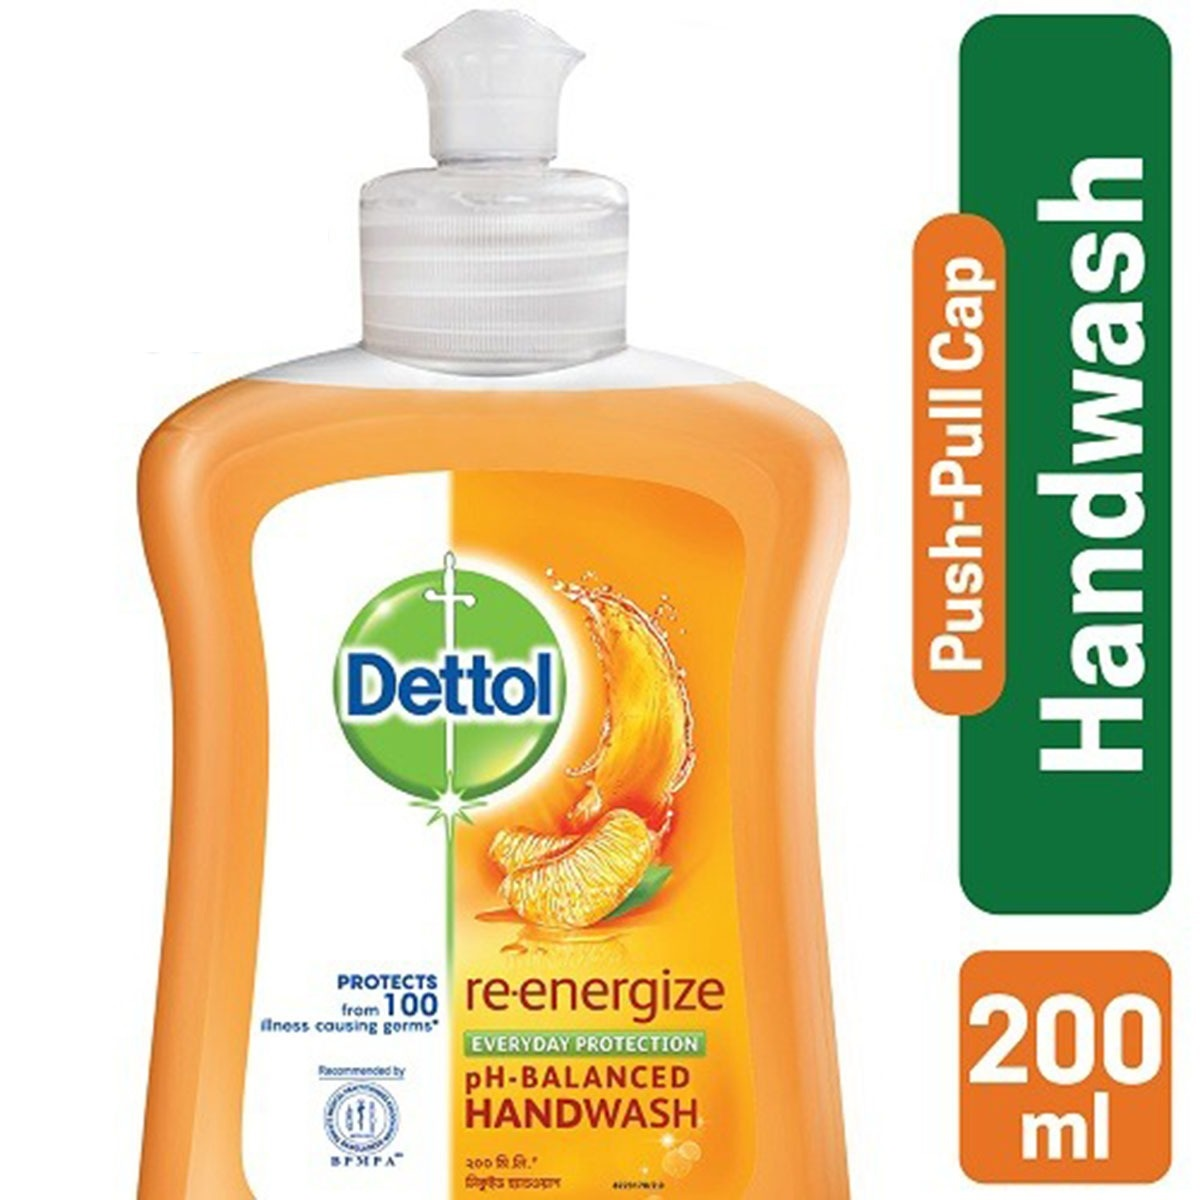 Dettol Handwash 200 ml Push Cap Re-energize_3